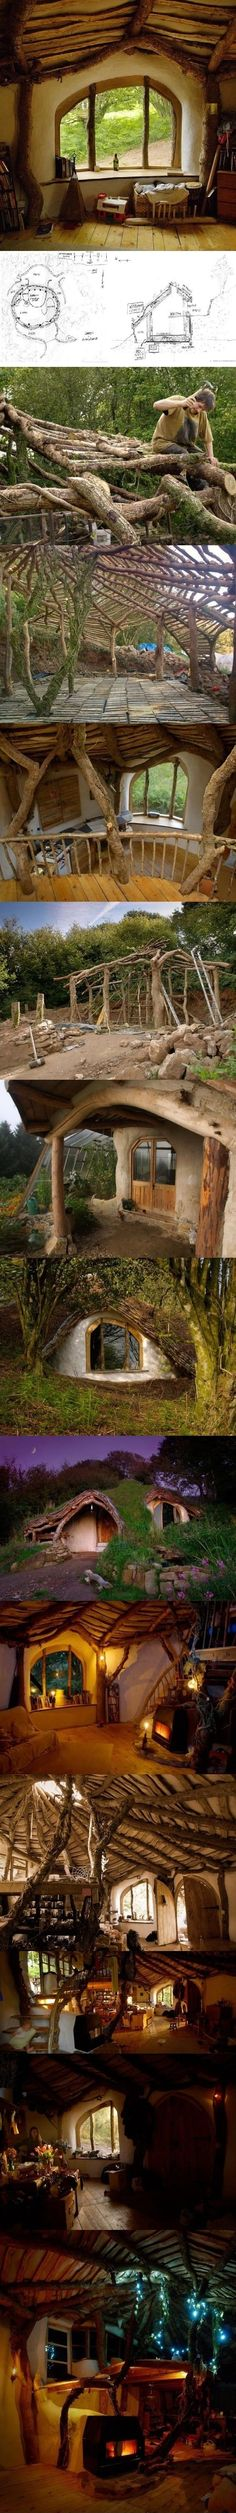 How to build a hobbit house. I will do this one day.